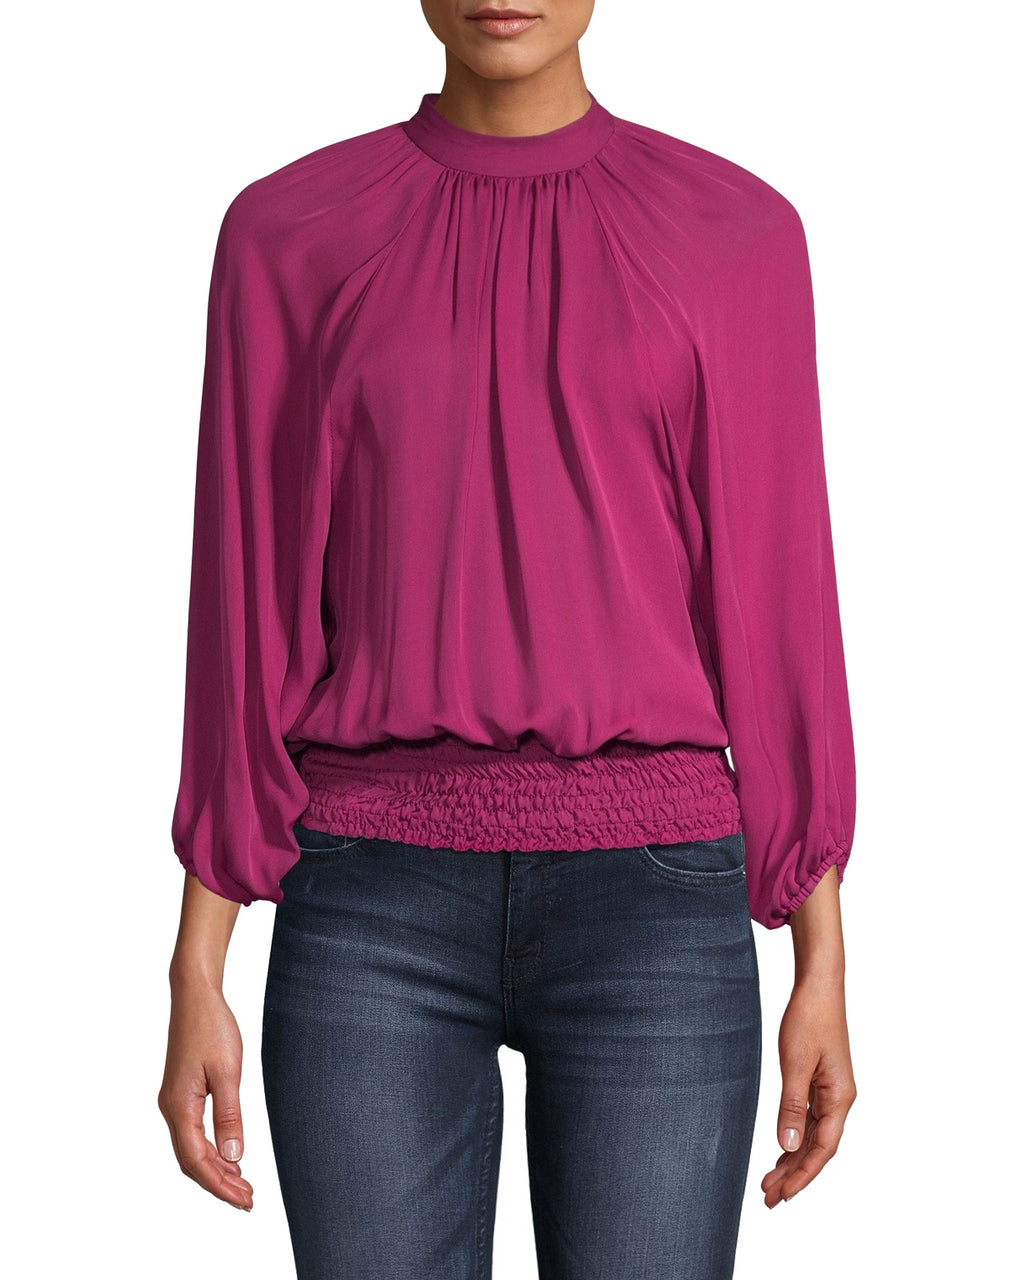 CT18156 - SILK SMOCKED WAIST BLOUSE - tops - blouses - The ultimate fall top for transitioning from day to night. Crafted in lightweight silk, this blouse features a smocked wasit and cuffs and a high neck. Add 1 line break Stylist tip: Pair with one of our blazers for day and wear solo for night.